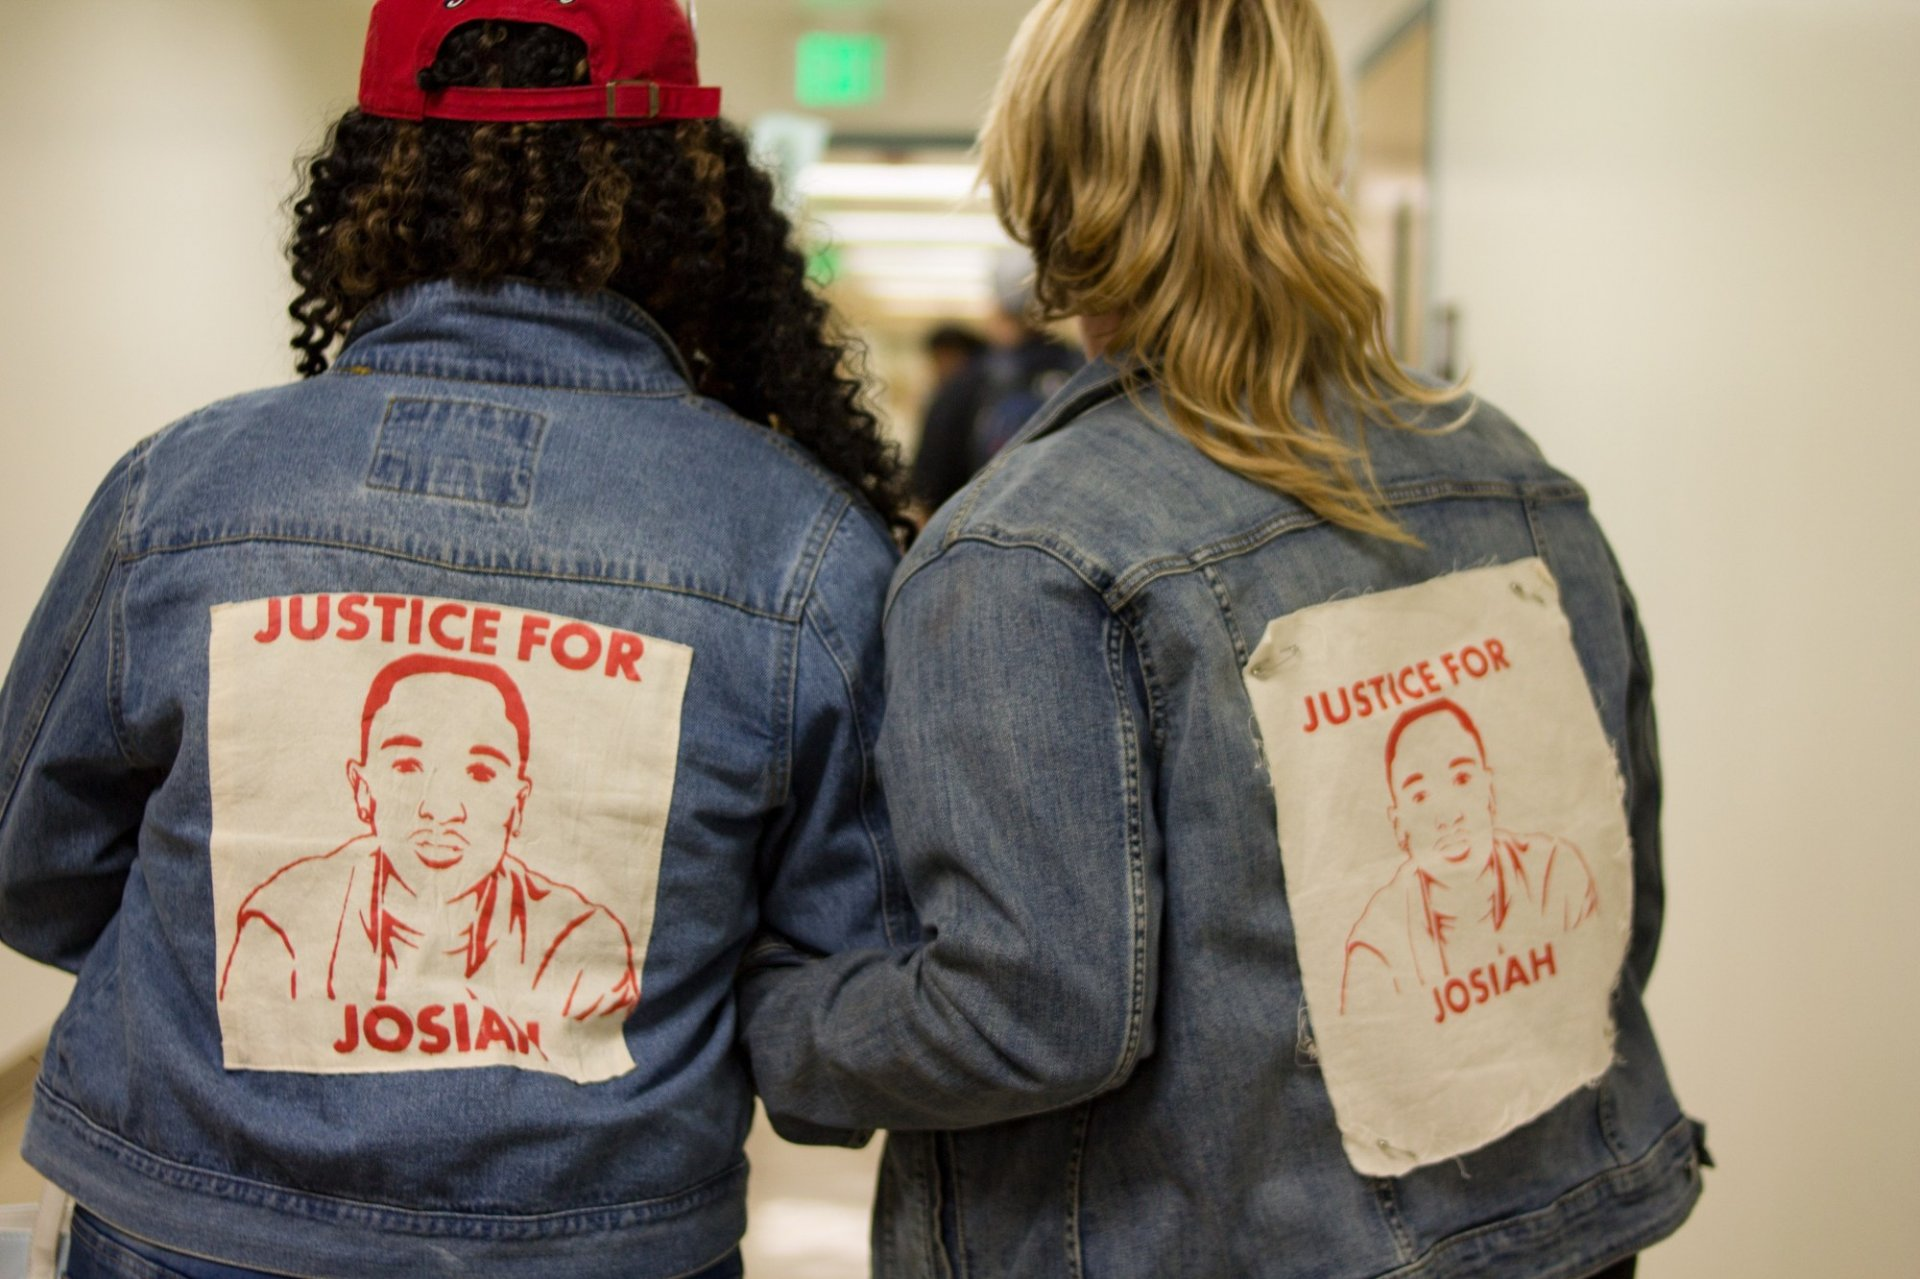 (From left) Charmaine Lawson, mother of Josiah Lawson, and Jill Larrabee, Justice for Josiah committee member, speak of acountability and safety at Sacramento State University on Oct. 18, 2018. | Photo by Tony Wallin